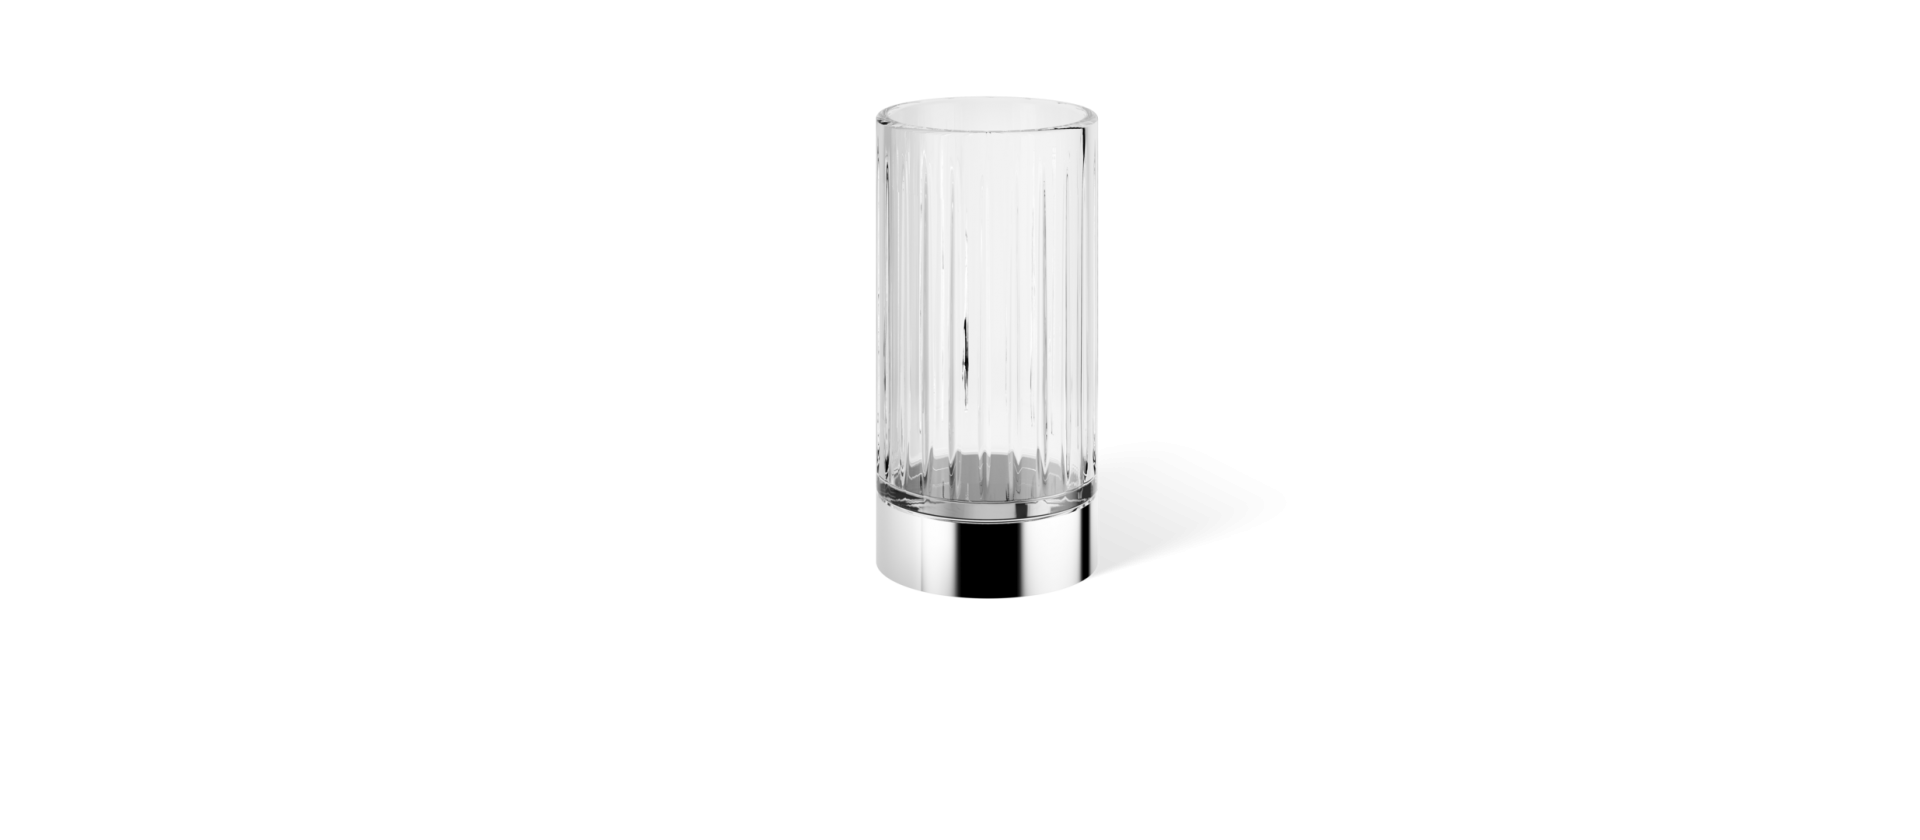 A glass | Decor Walther toothbrush holder big